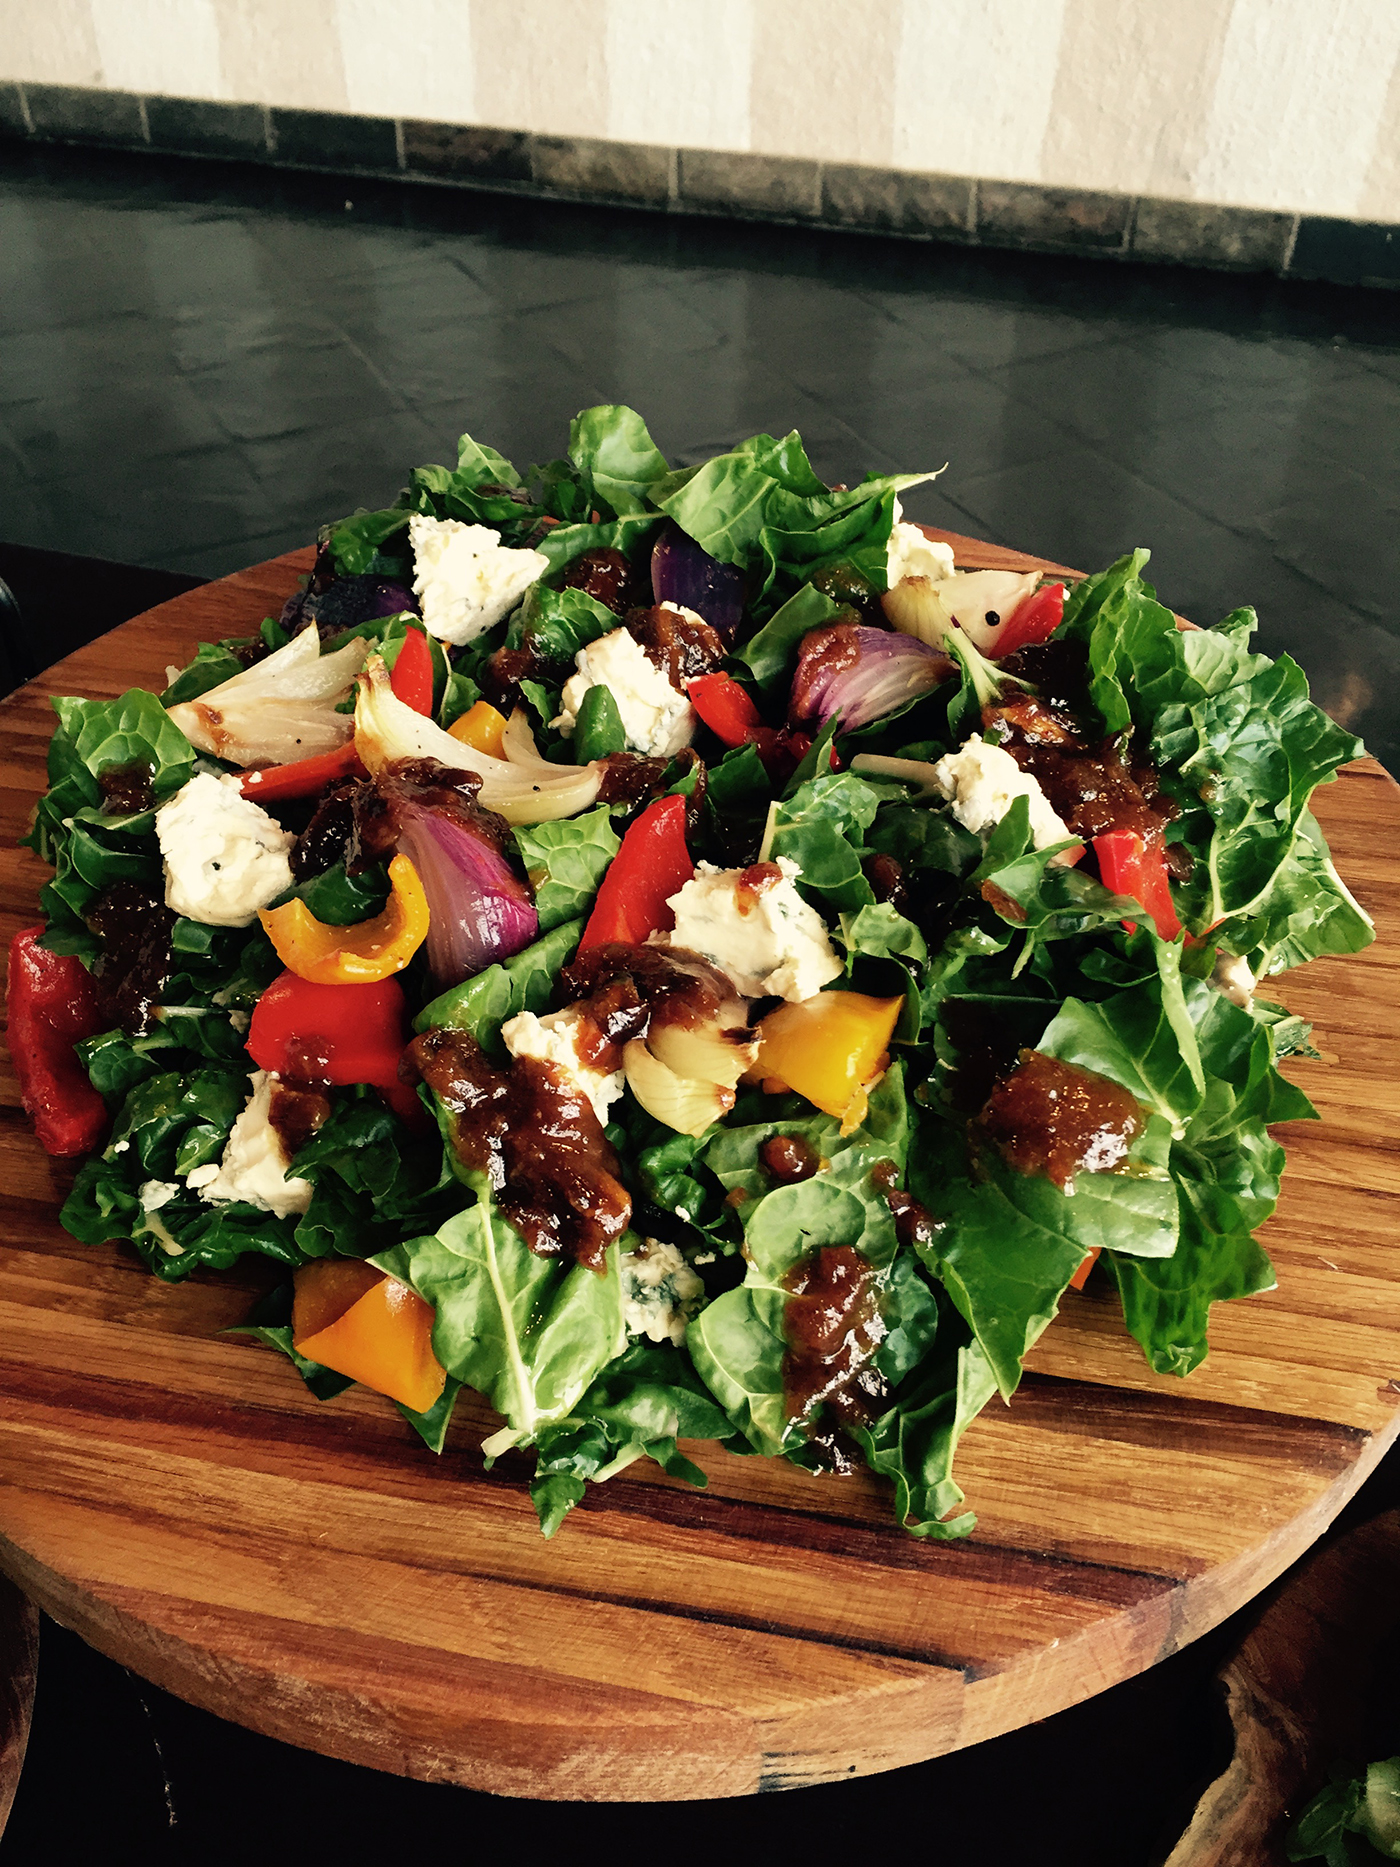 Spinach, creamy gorgonzola, roasted peppers and sweet roasted red onion salad with a date dressing.